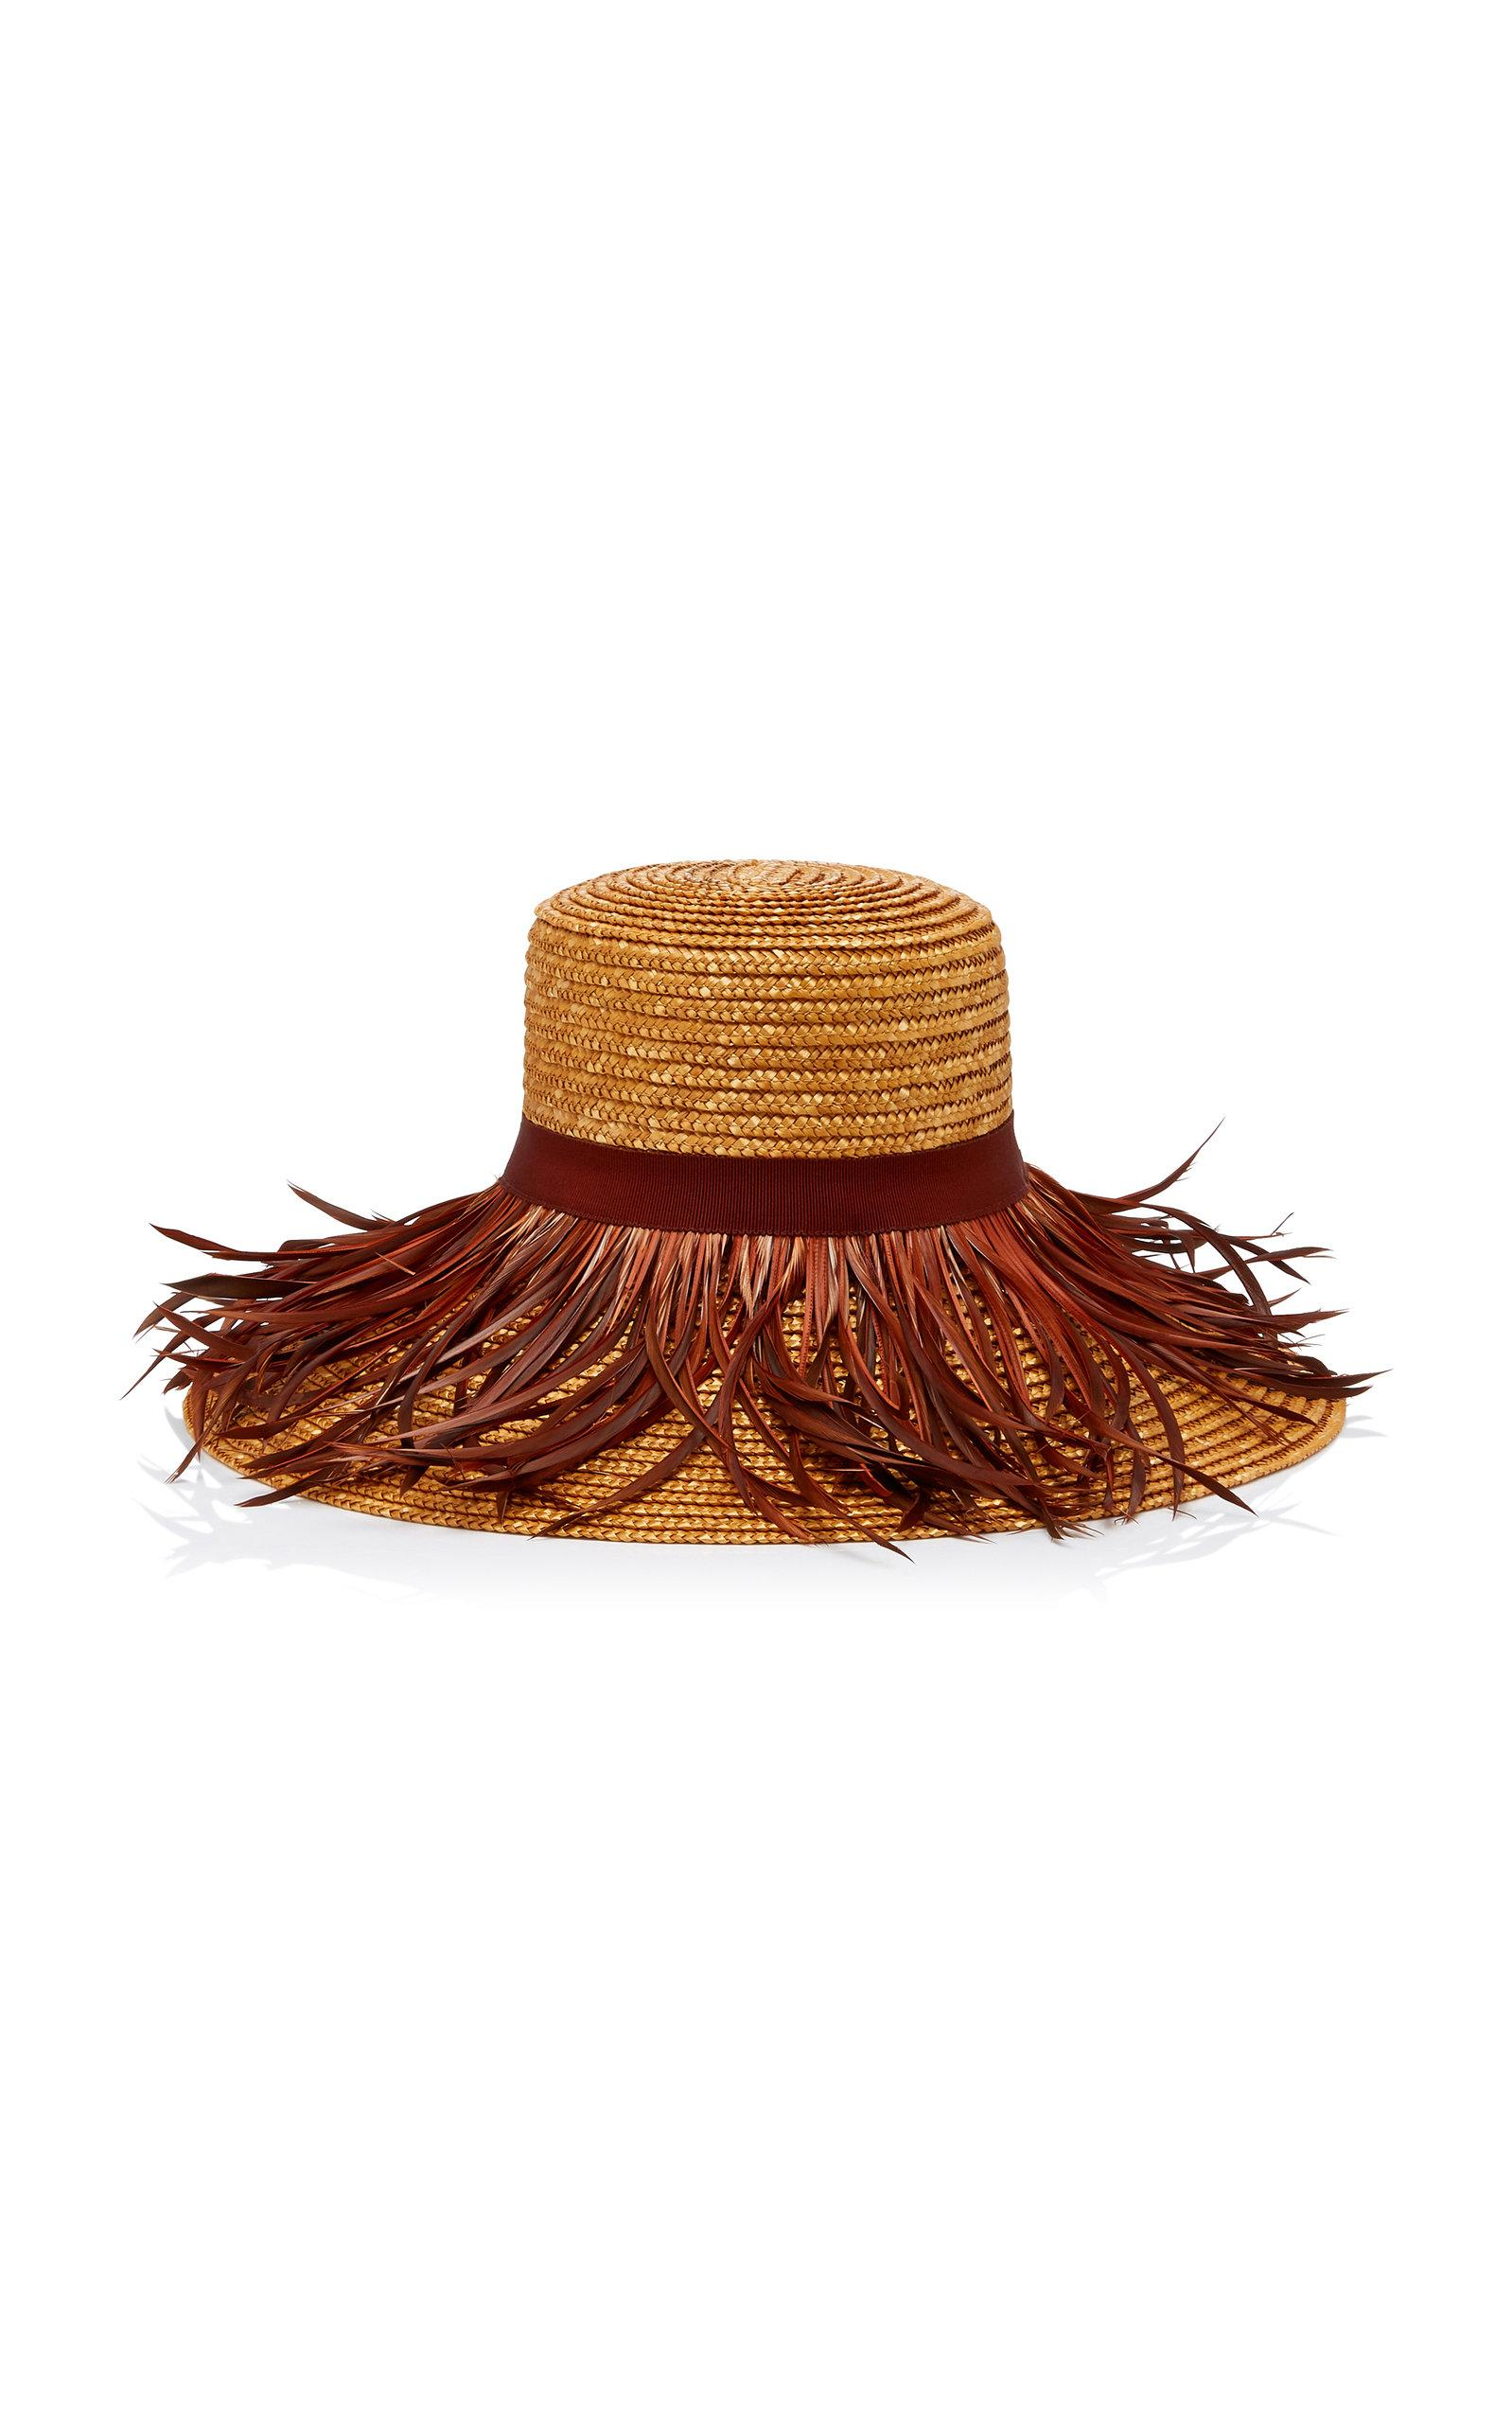 Lyst - Eugenia Kim Annabelle Feather-trimmed Straw Hat in Brown e8bd8aee85d8